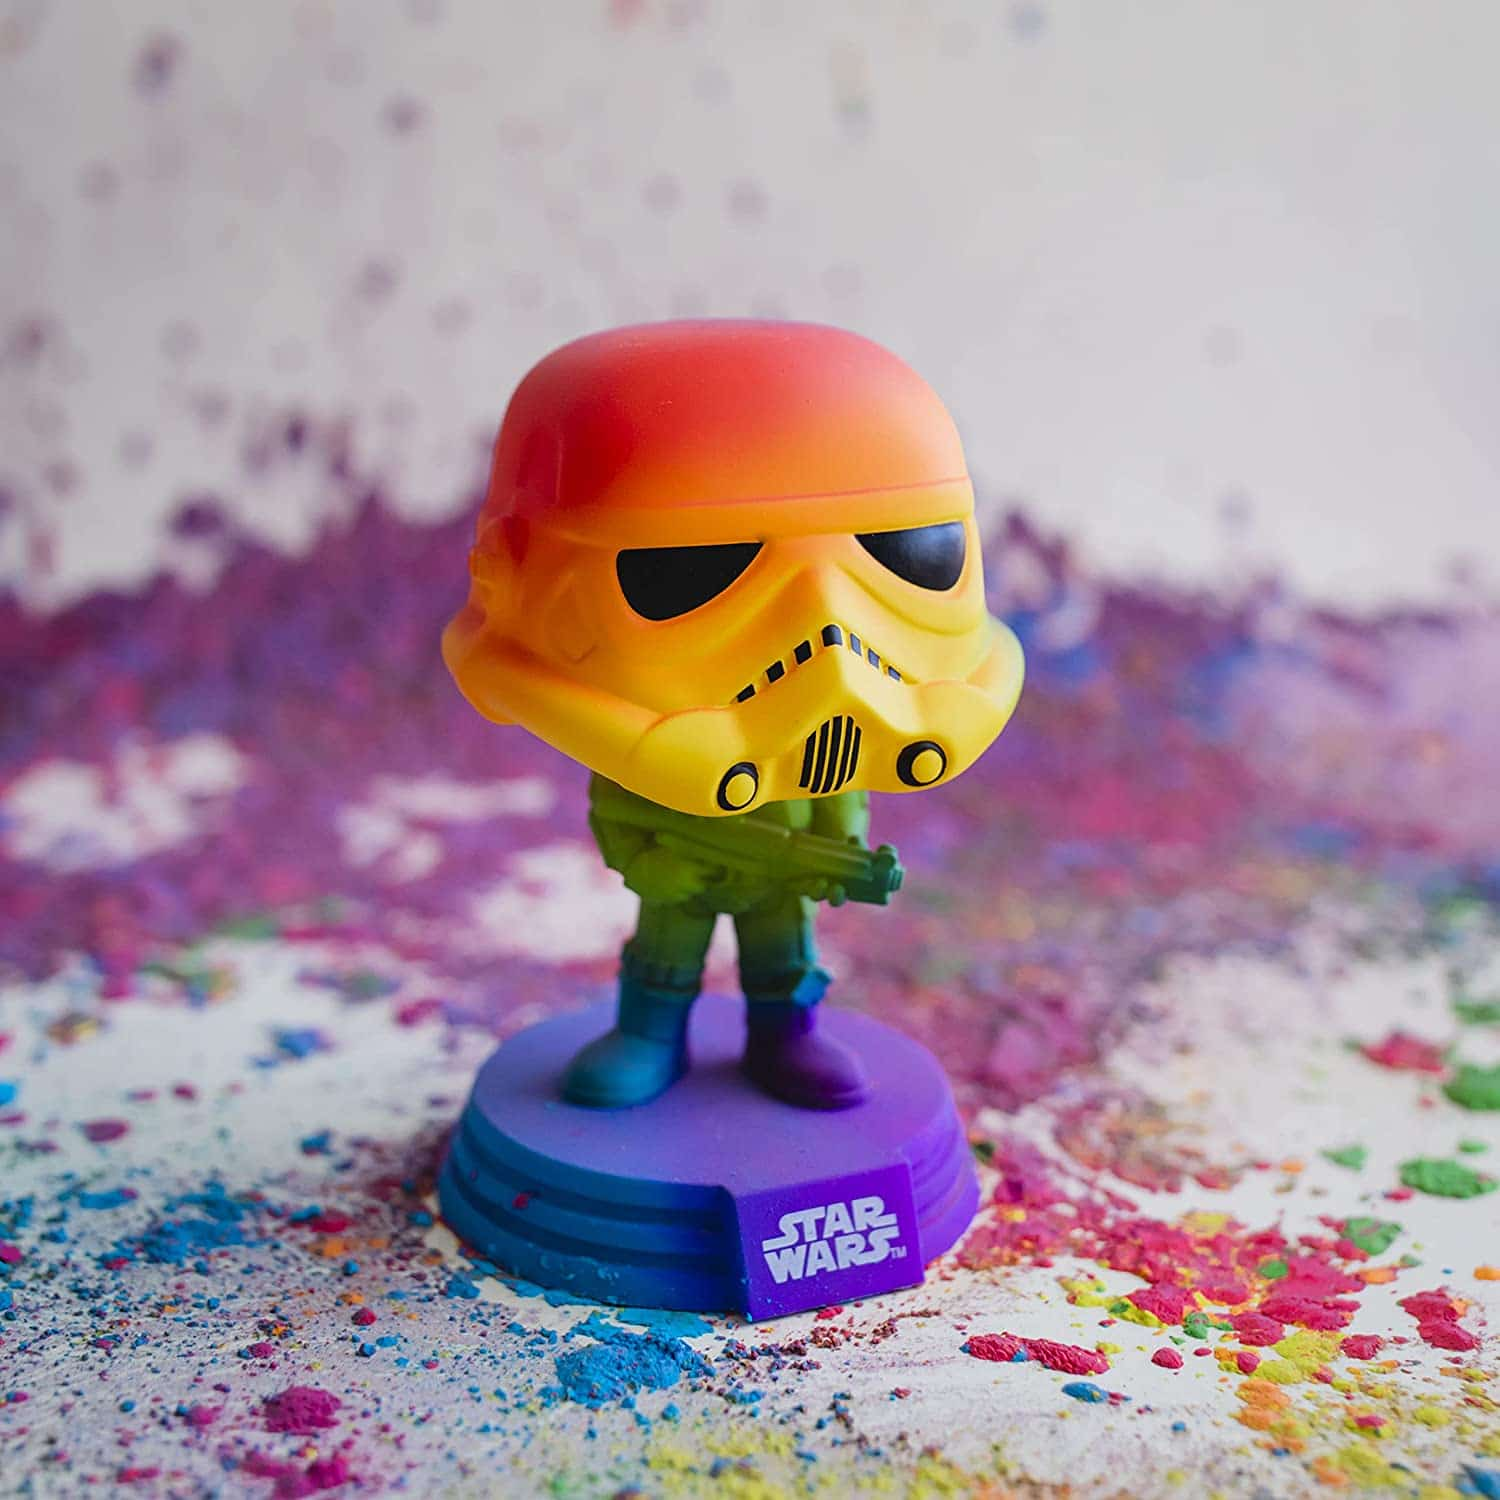 Funko's 2021 Pride Pop! collection includes Deadpool, Mickey Mouse, and Stitch 22